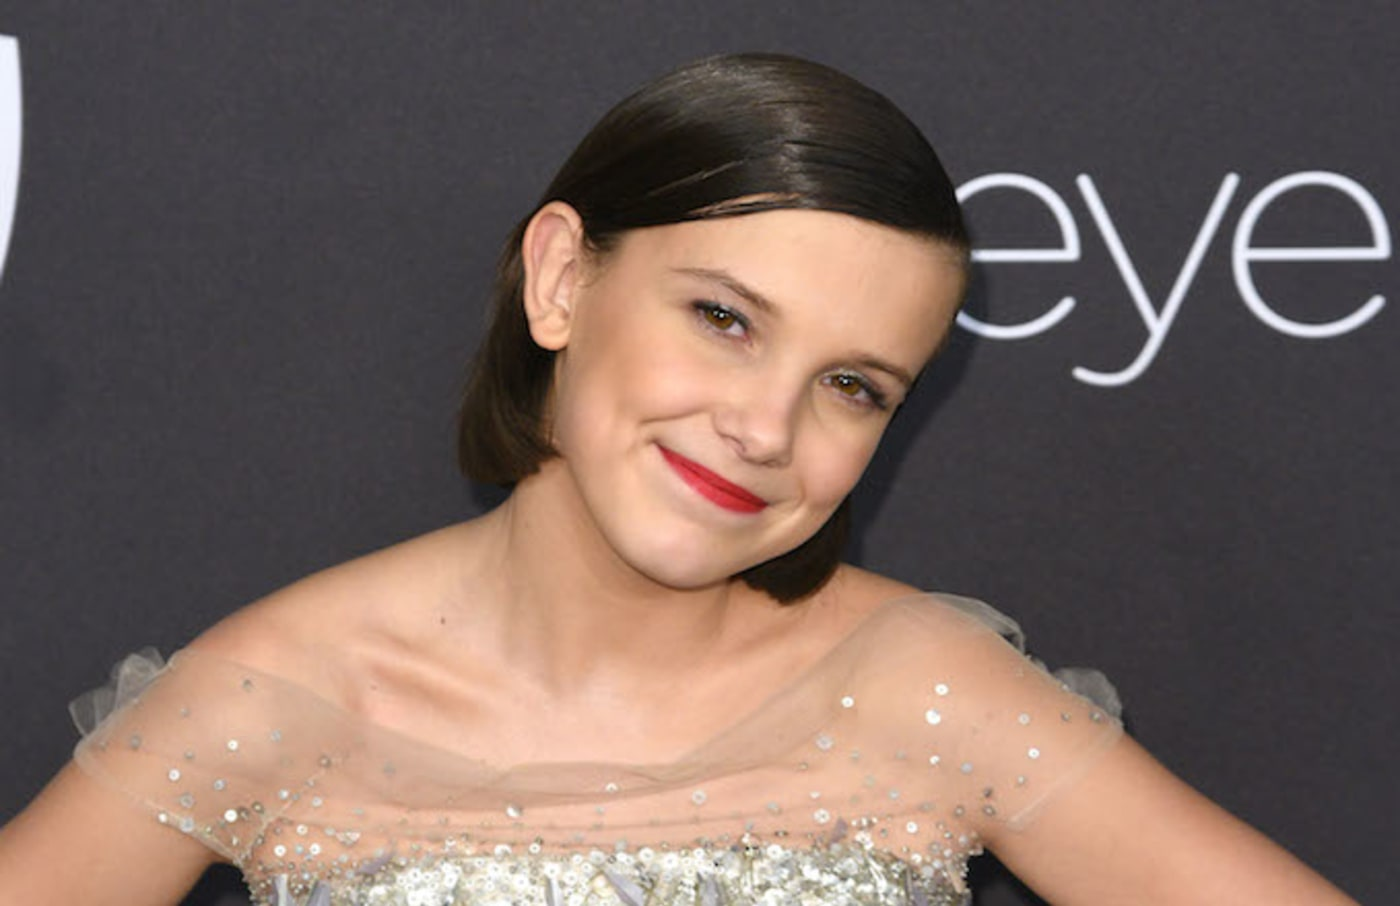 Millie Bobby Brown arrives at the 18th Annual Post Golden Globes Party